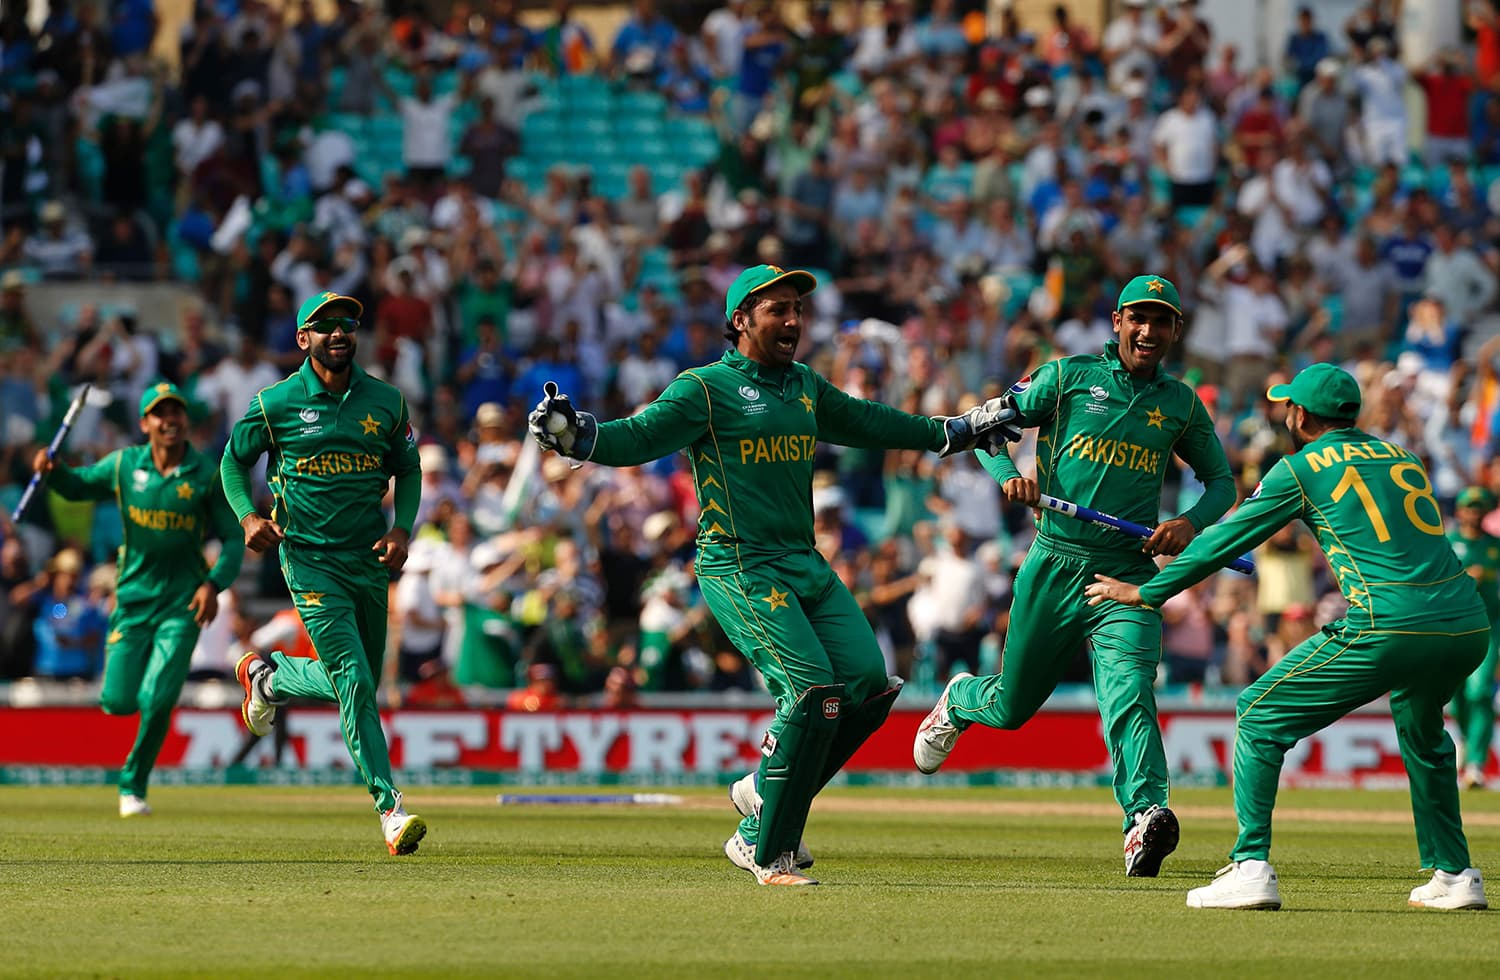 Sarfraz Ahmed celebrates with teammates after taking the final catch — AFP